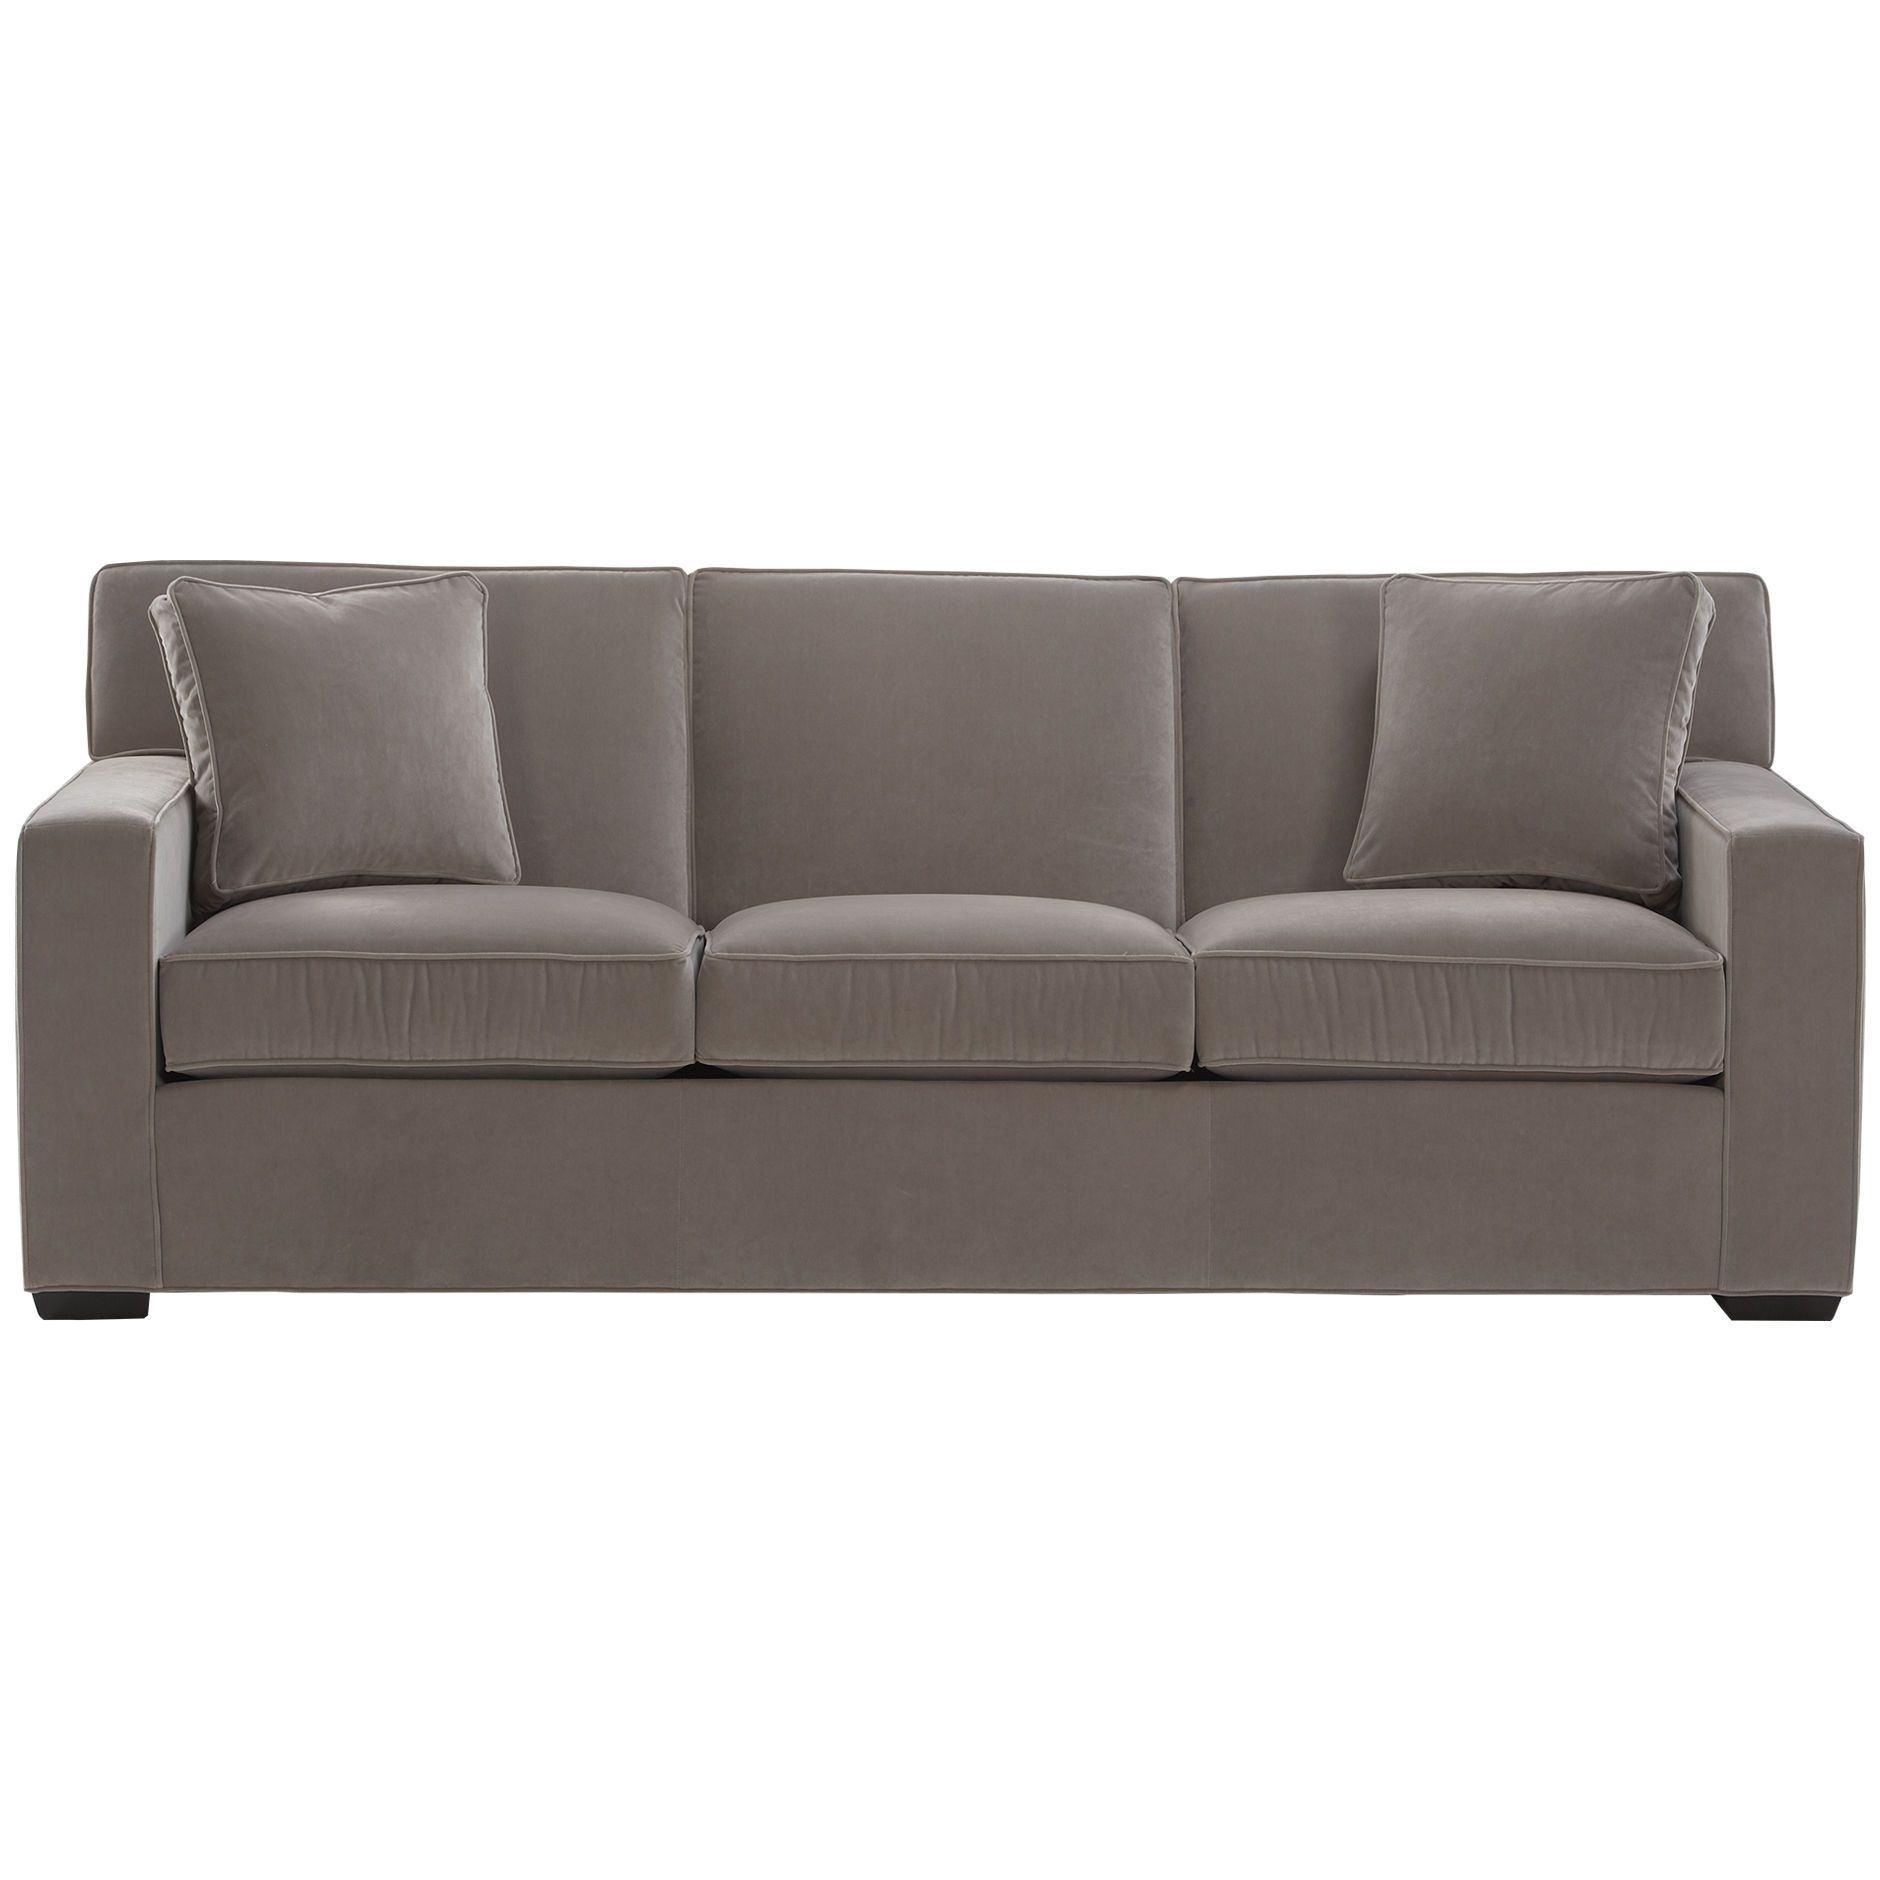 I Would Love The Kendall Sofa From Ethan Allen, But I Am Going To Have